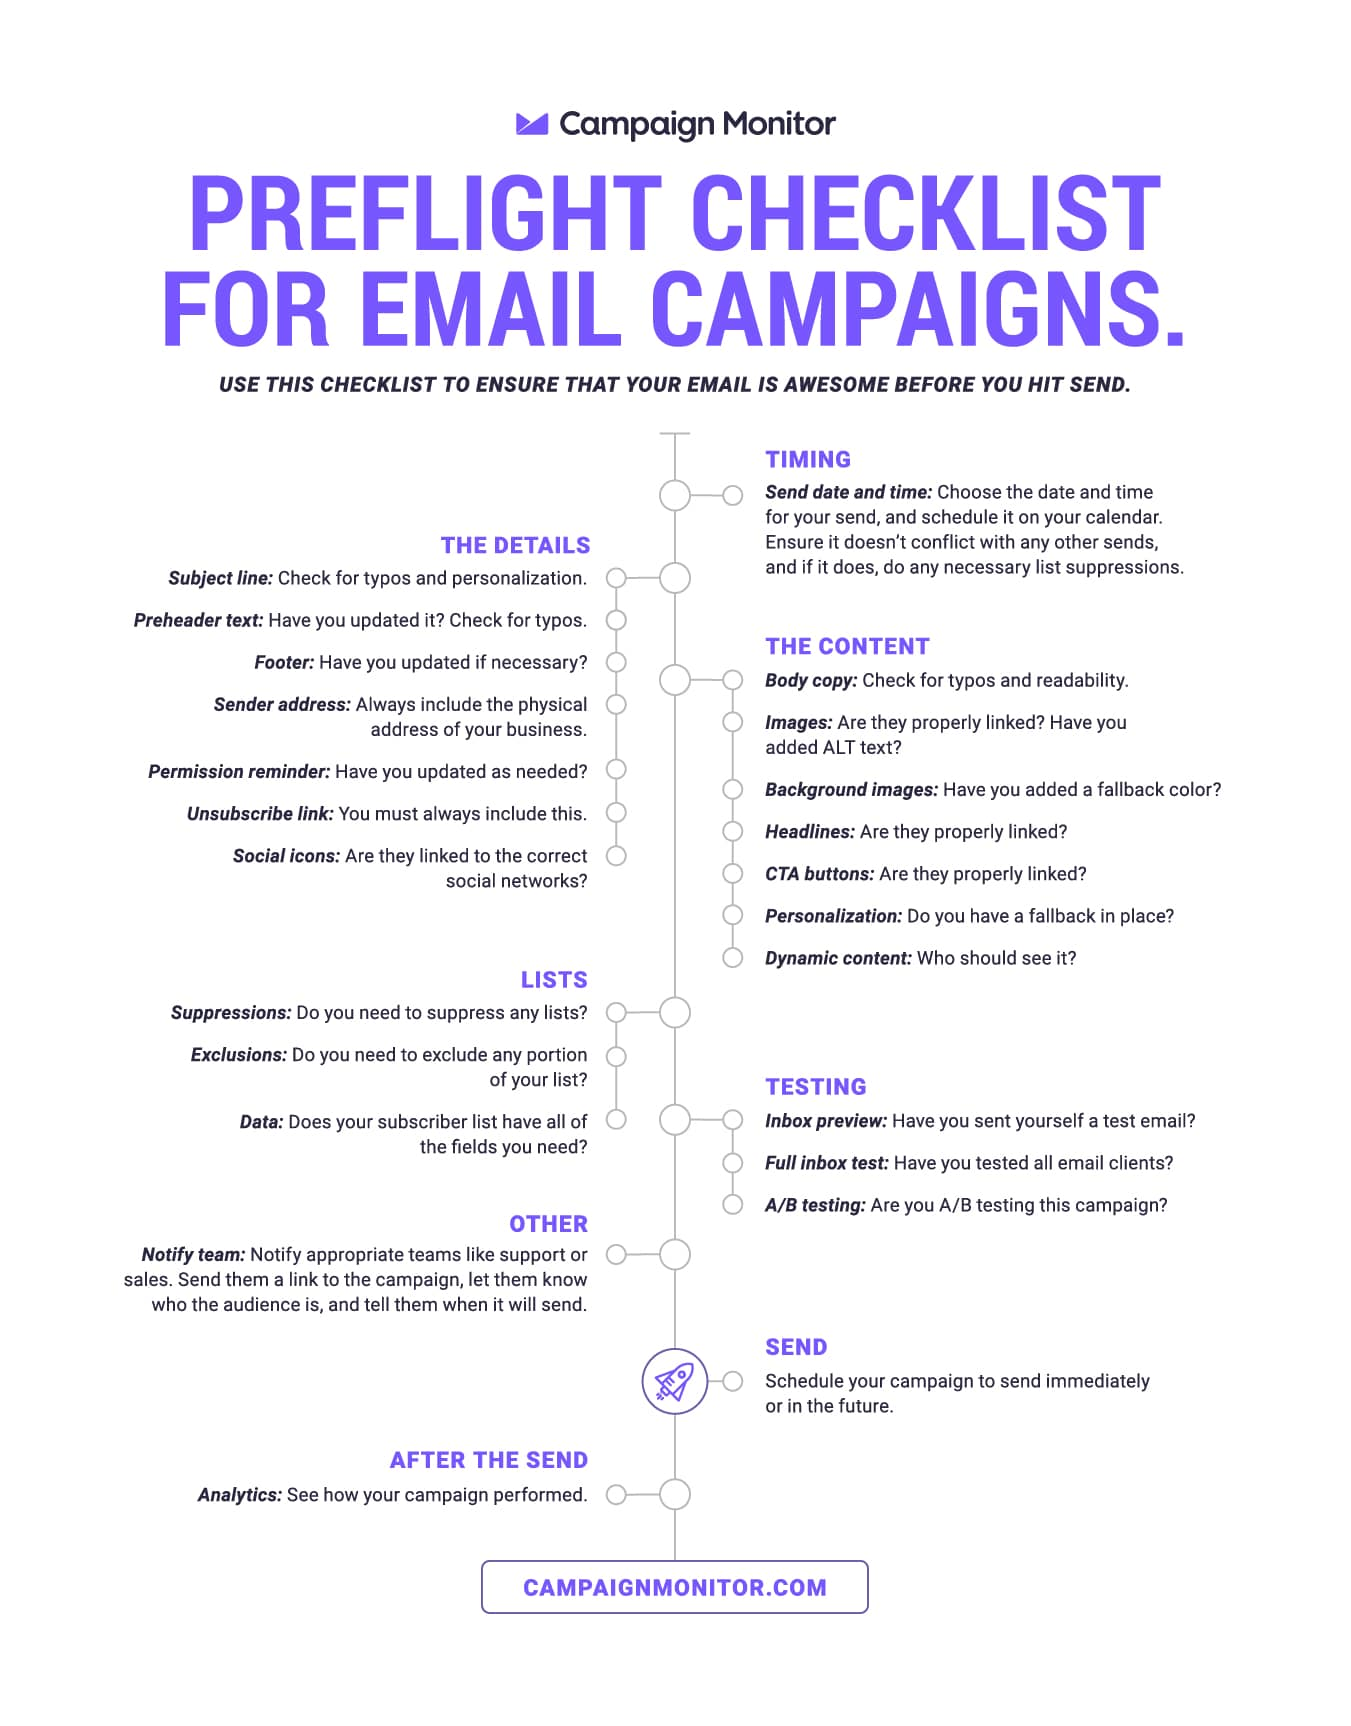 Email preflight checklist - get a professional email format for email marketing - anatomy of an email infographic